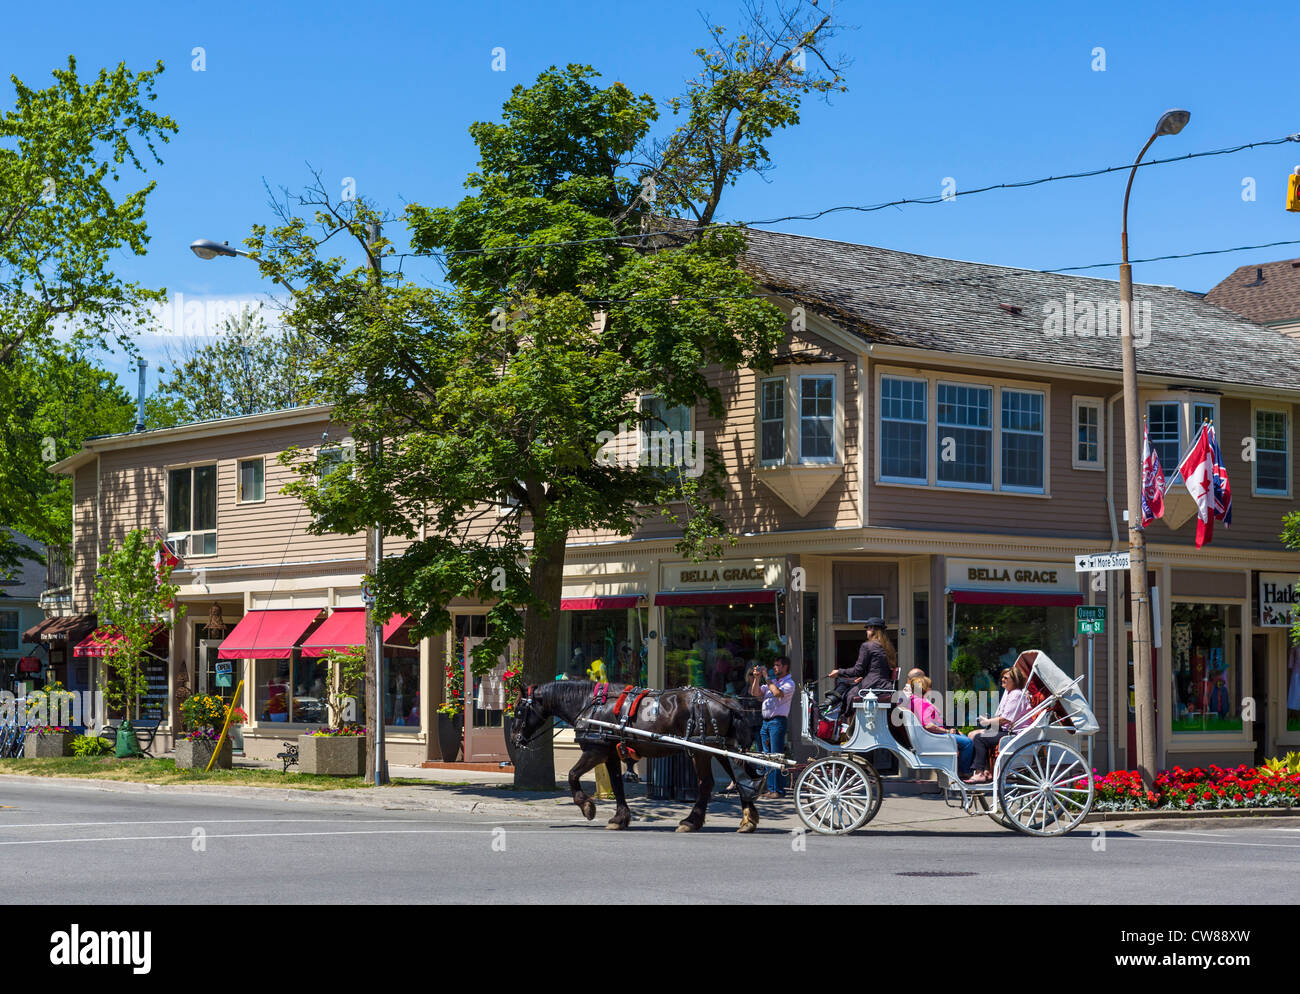 Horse and carriage in front of shops at the intersection of King and Queen Streets, Niagara-on-the-Lake, Ontario, - Stock Image